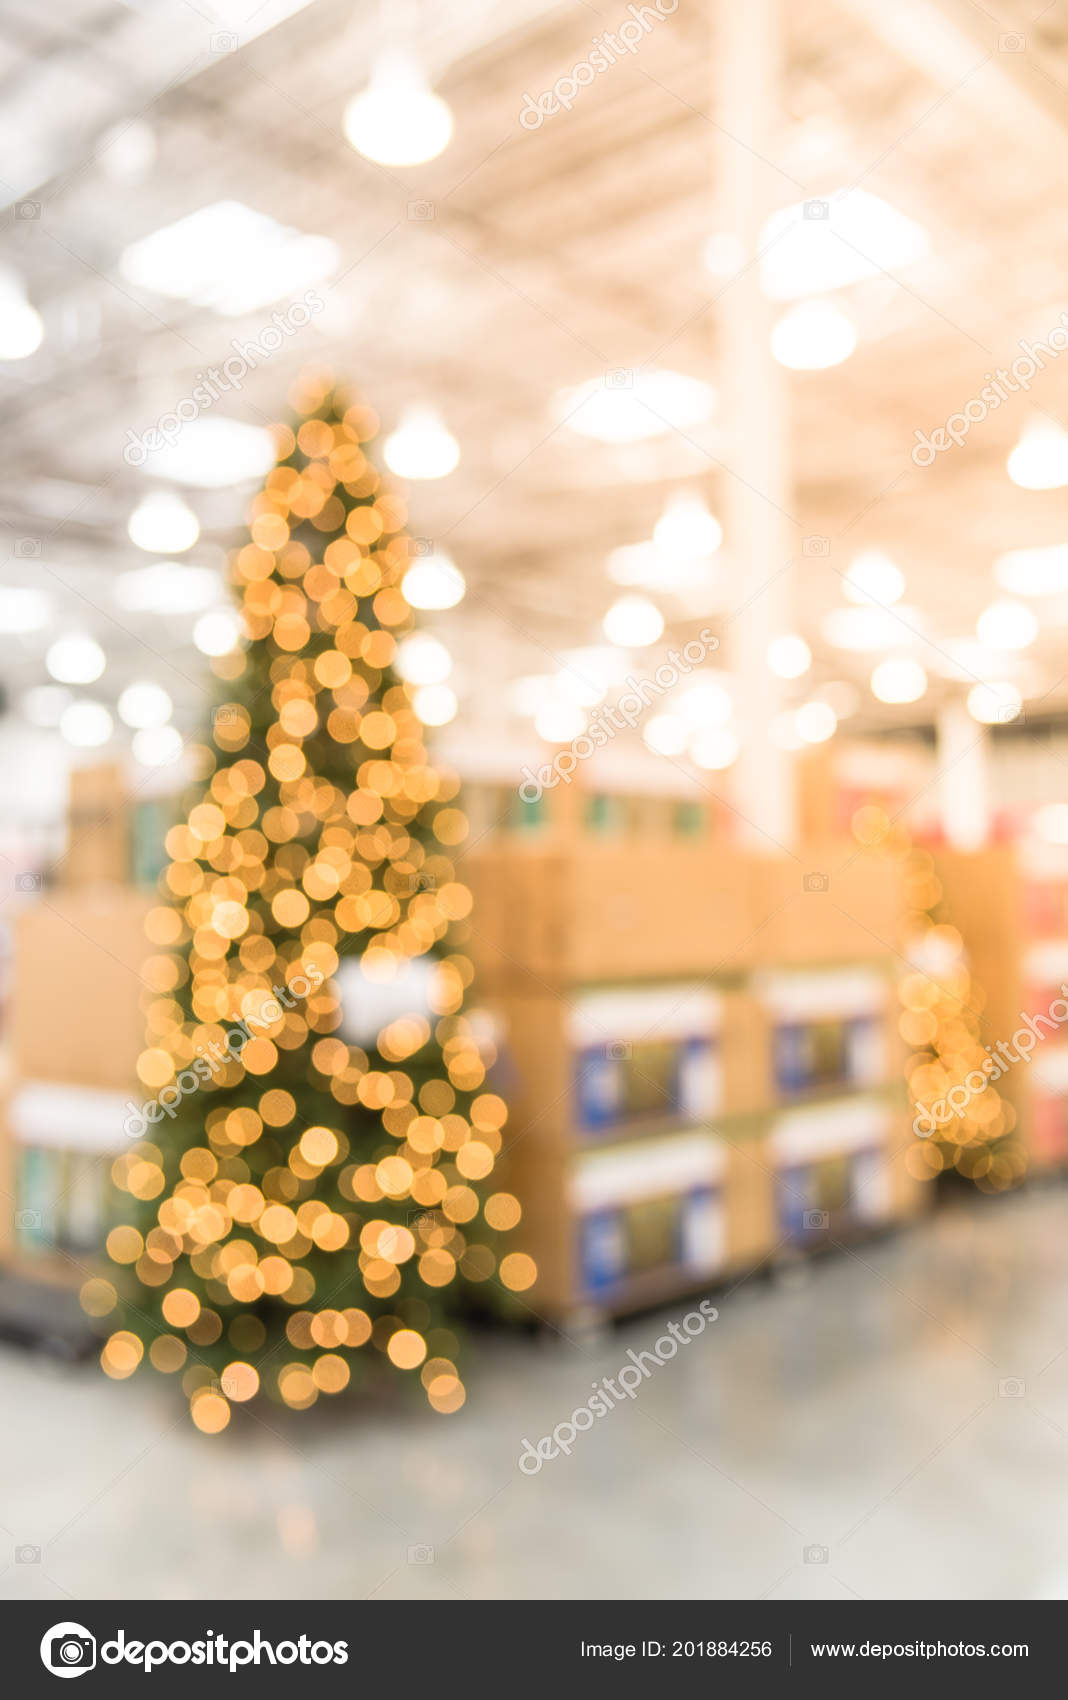 Blurred image huge Christmas tree decoration in wholesale store. Wreaths and strings of bokeh lights surround the artificial Christmas tree.